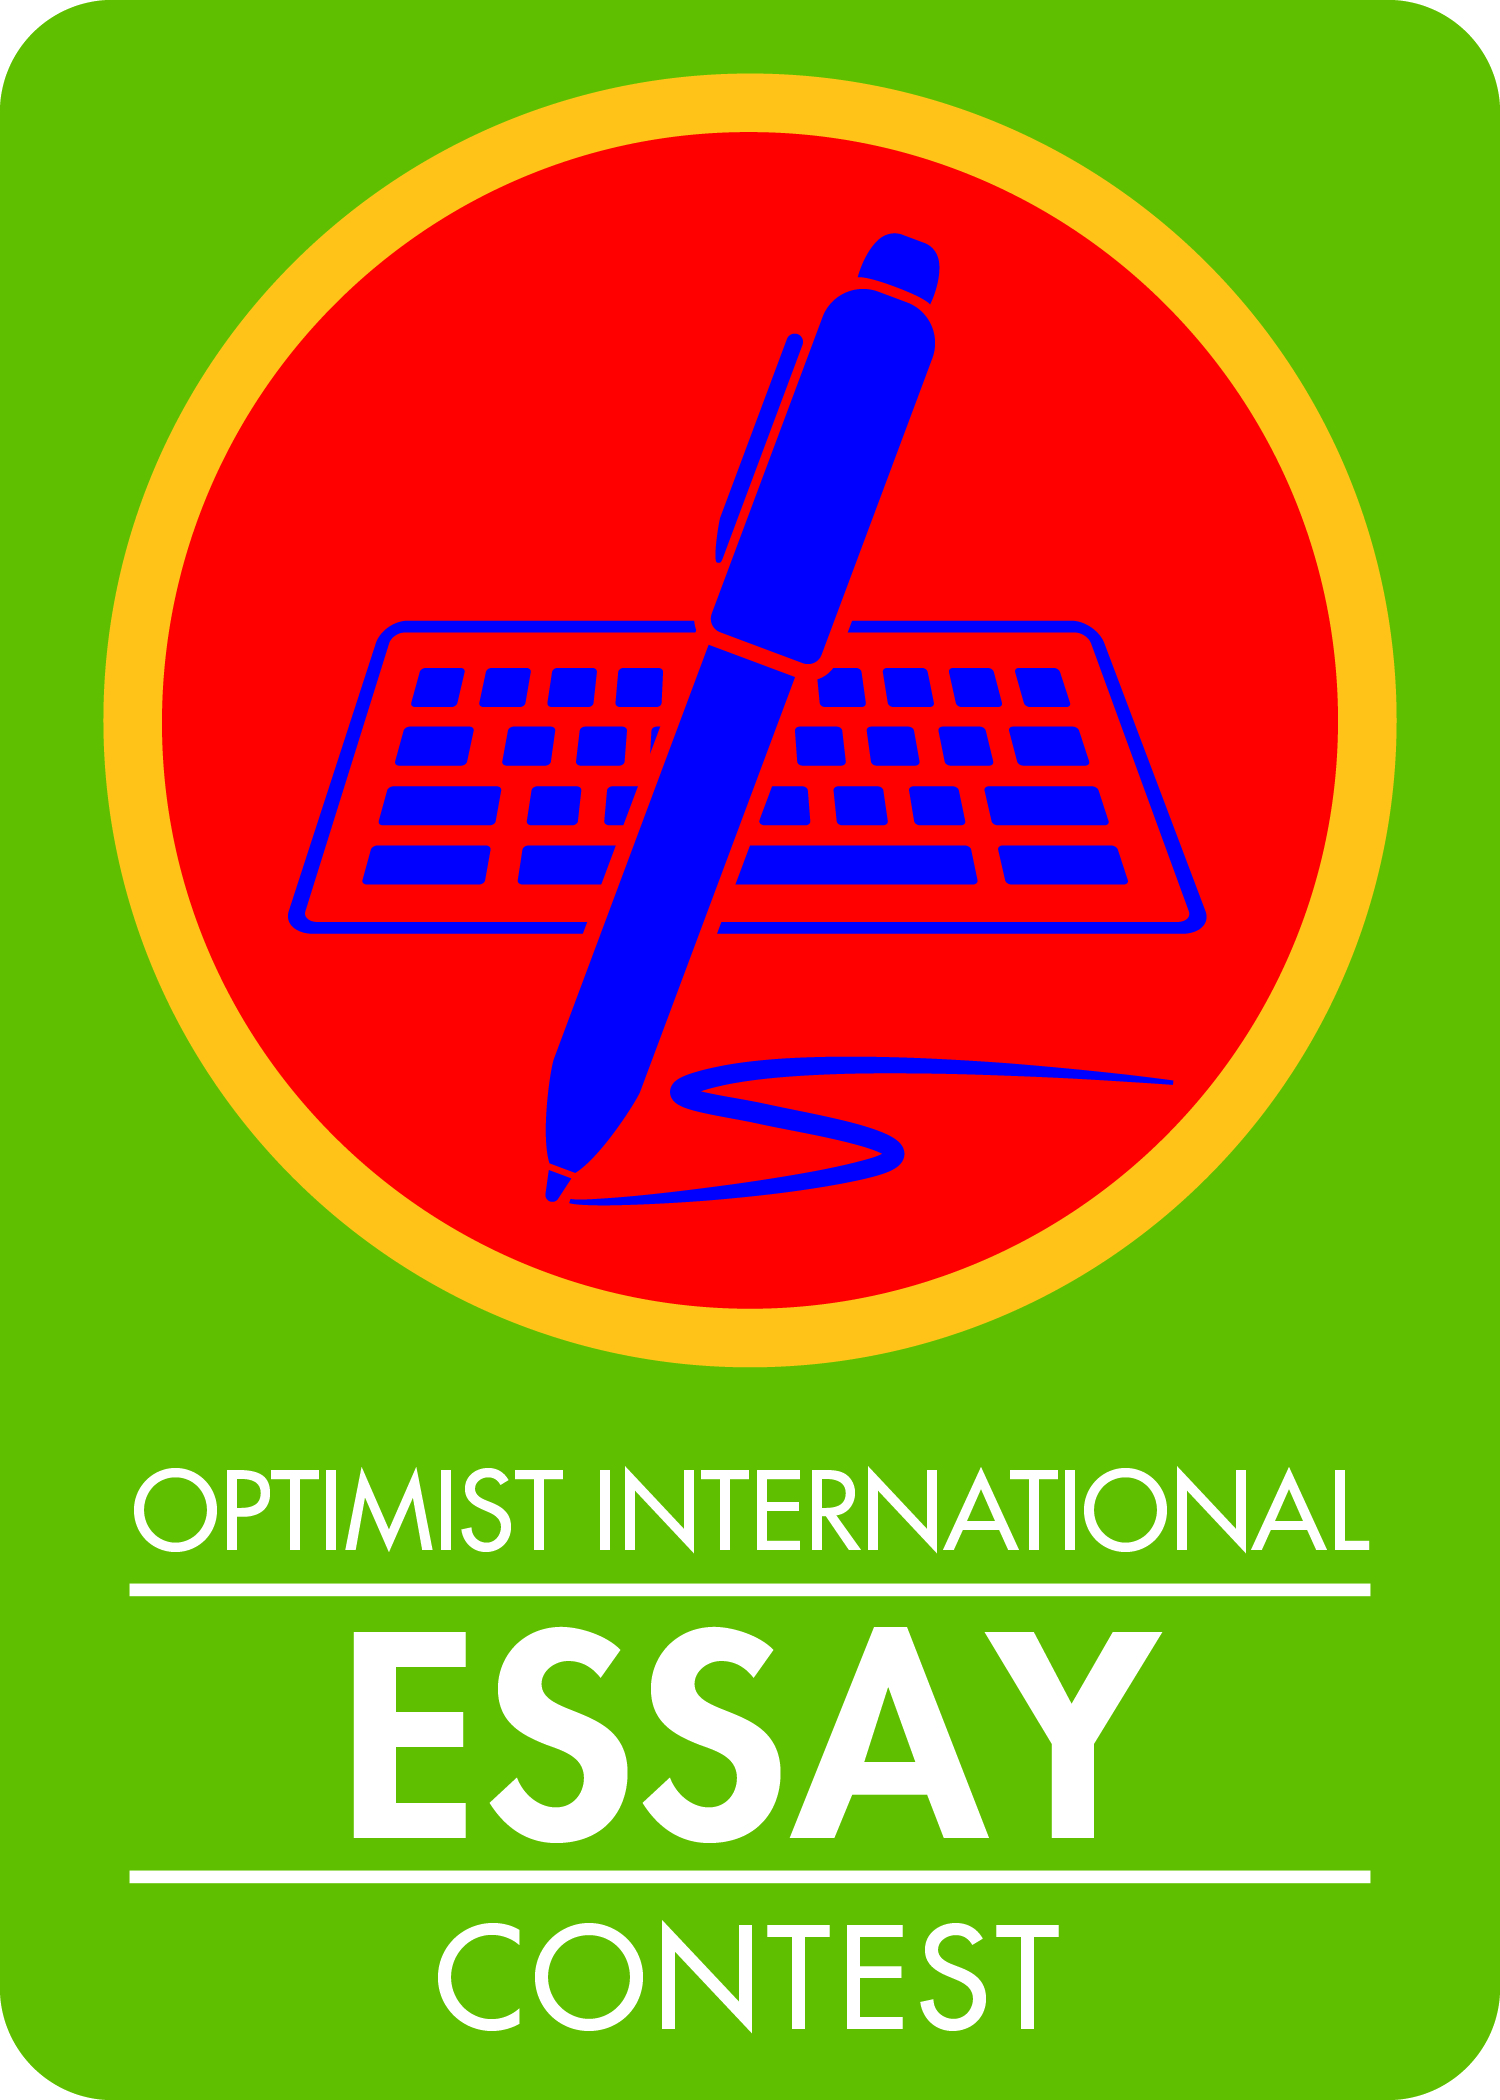 optimist international essay contest 2015 Purpose the essay contest is sponsored by optimist international to give young people the opportunity to write about their own opinions regarding the world in which they live.